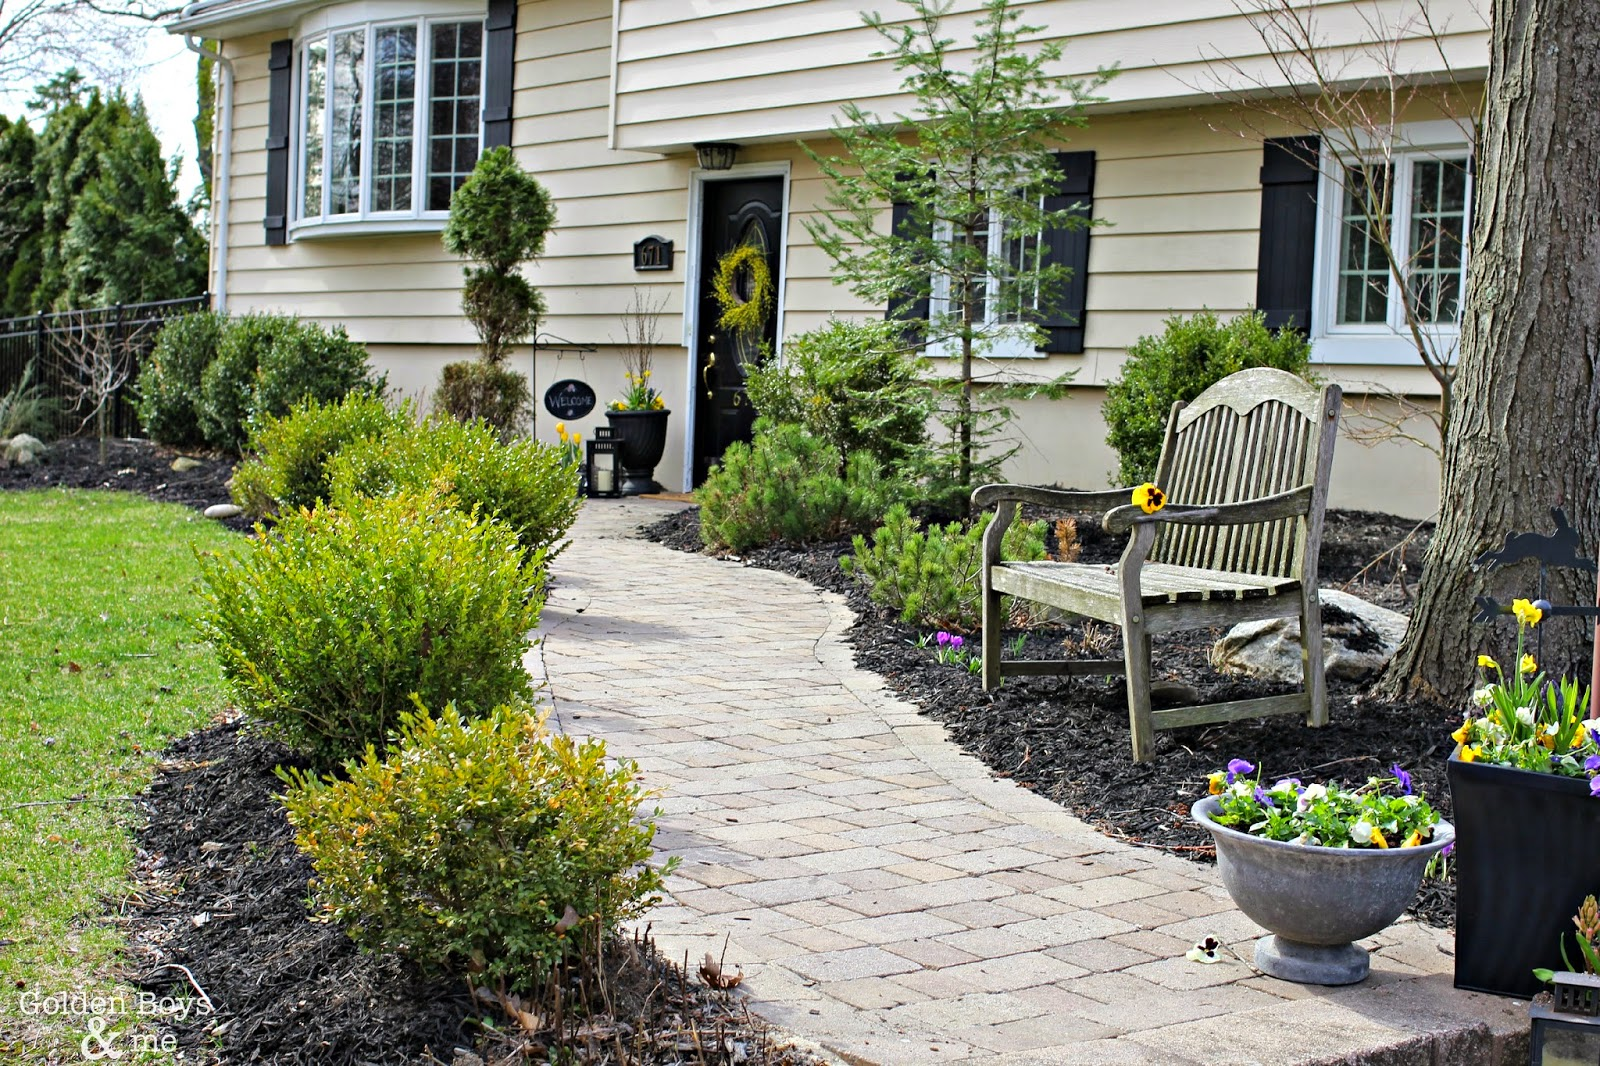 Exterior Landscaping: Golden Boys And Me: Adding Curb Appeal With New Shutters